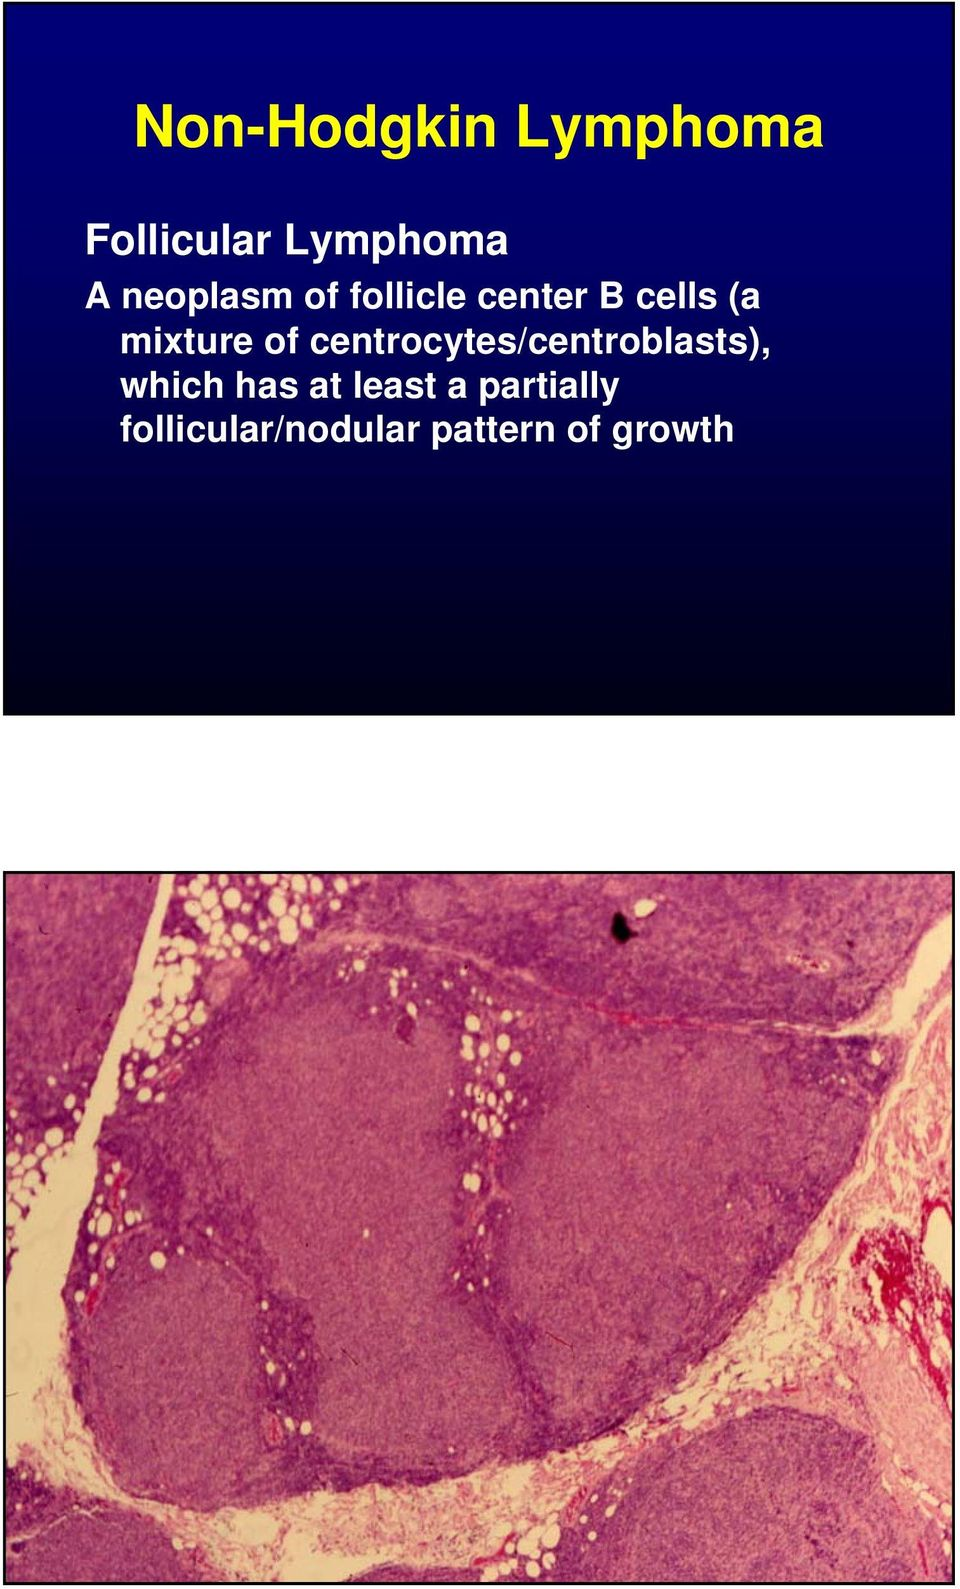 of centrocytes/centroblasts), which has at